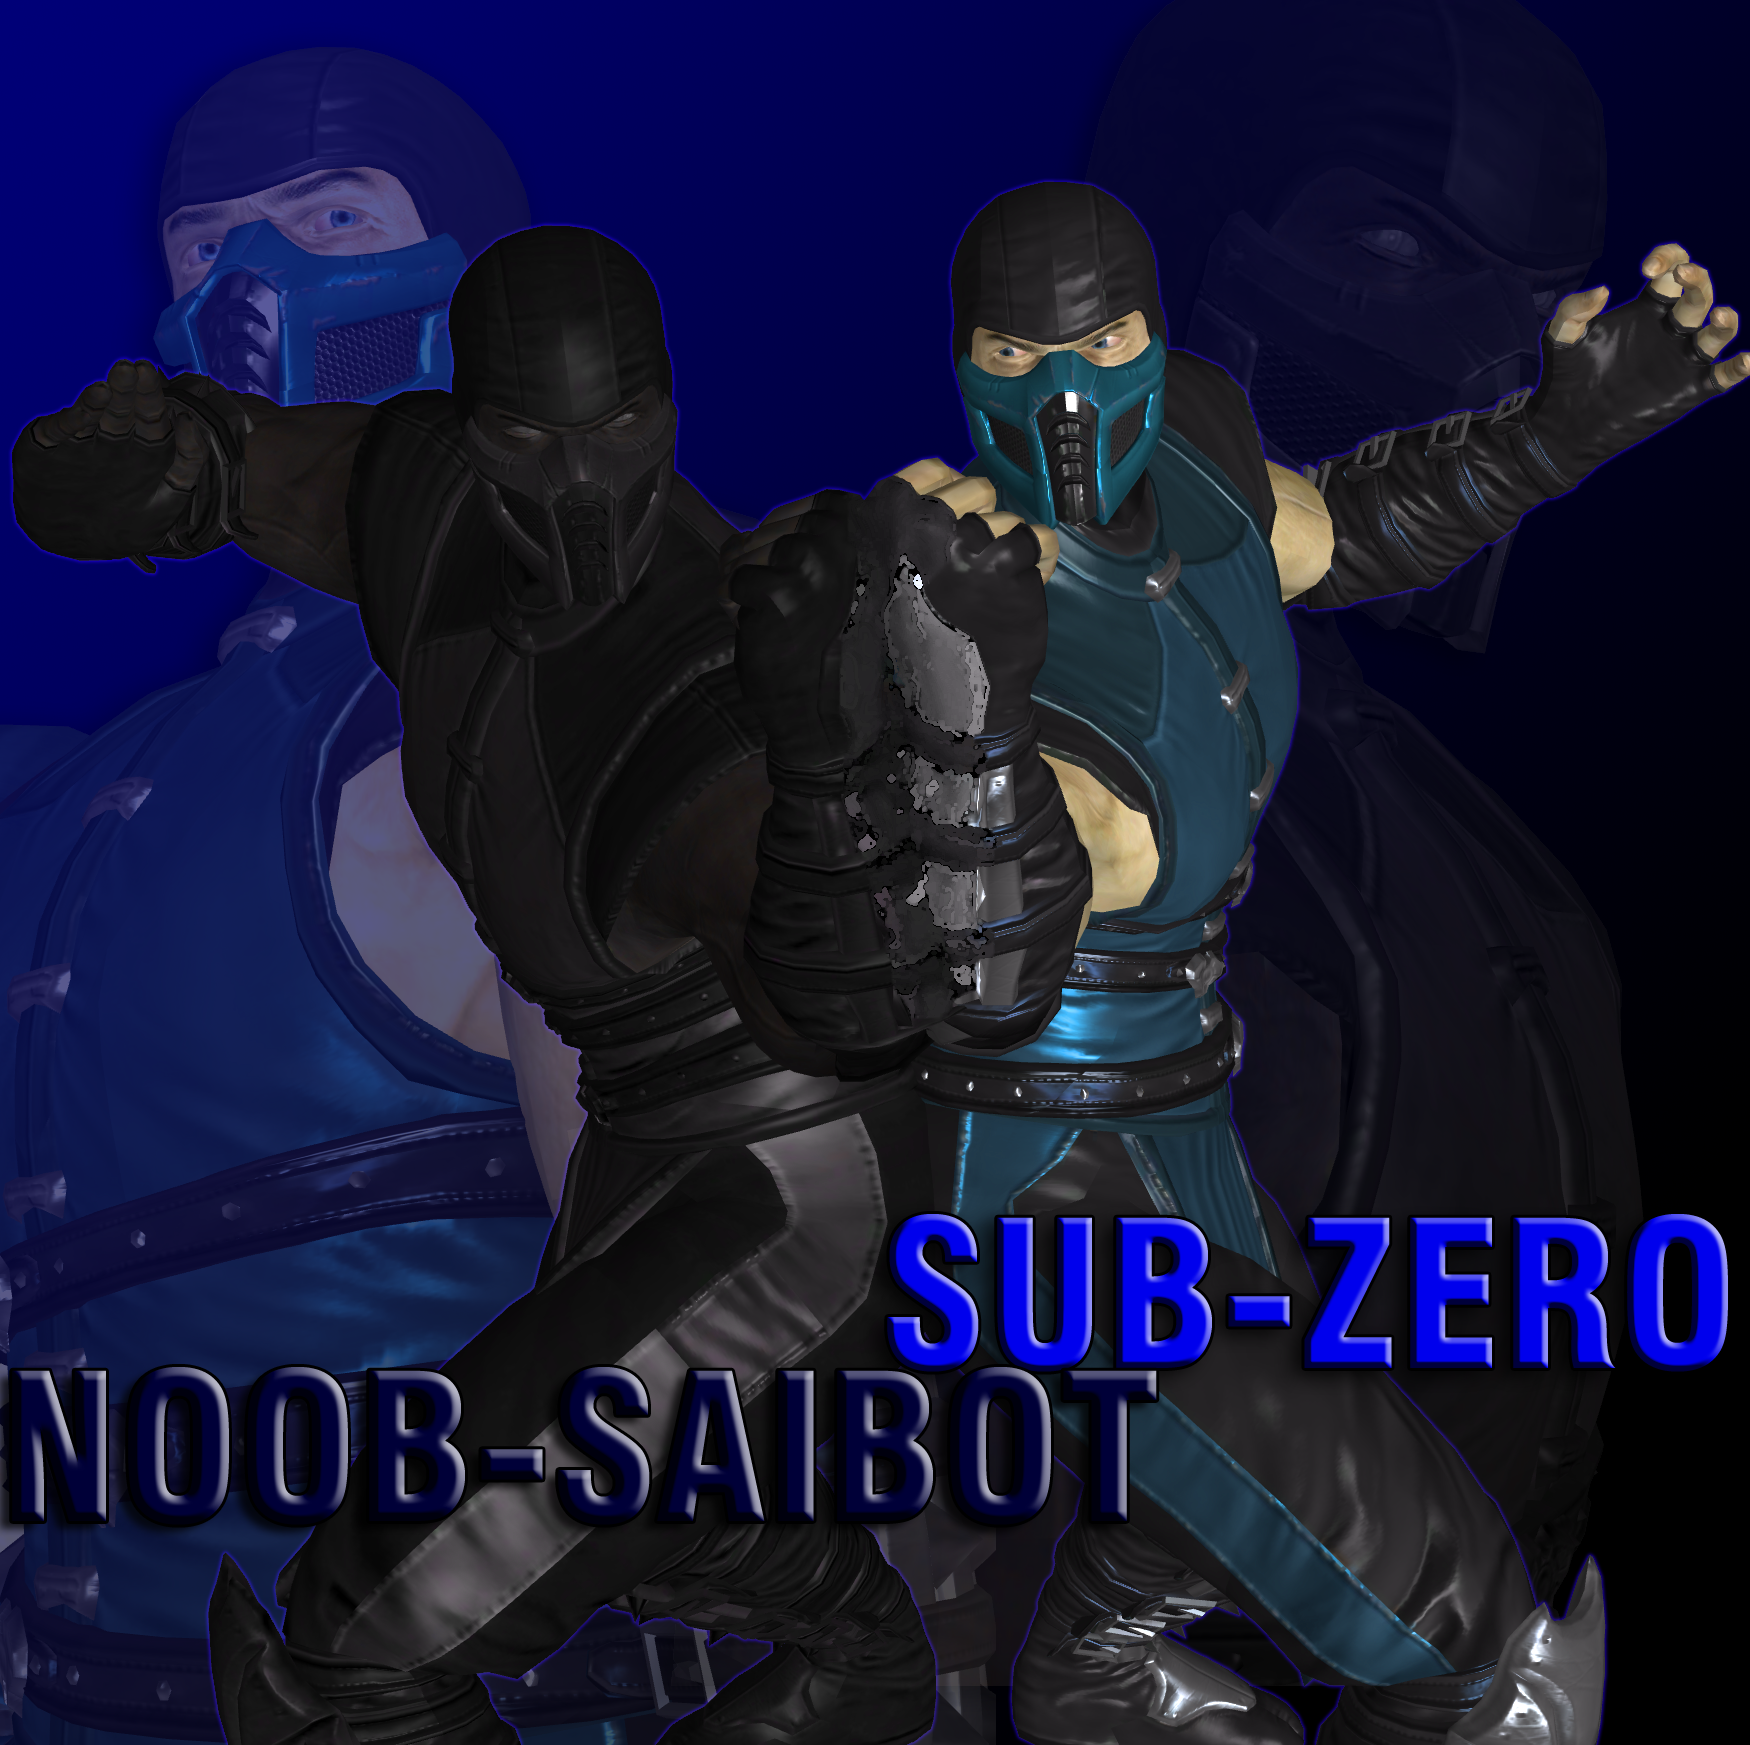 Mortal Kombat : Sub-Zero and Noob-Saibot   by DOOM4Rus on